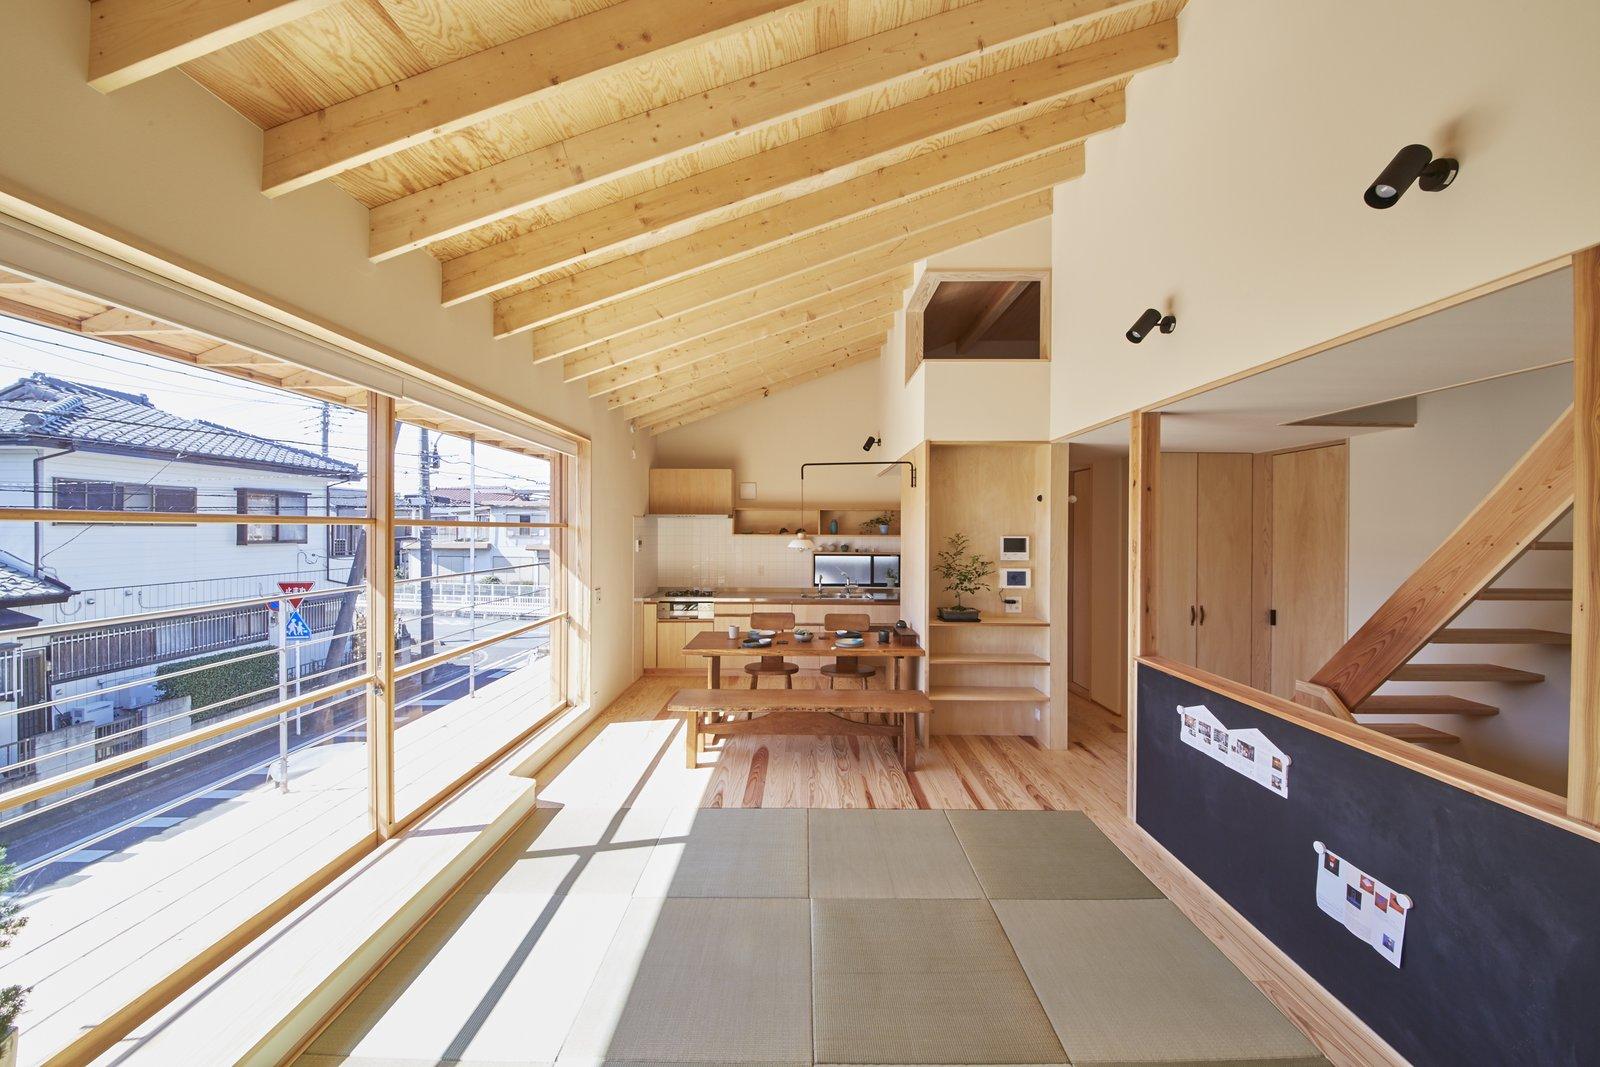 The 13-foot-wide sliding window provides abundant natural light year-round. The staircase was placed at the building's center to maximize openness and make space for the carport below. The blackboard is for the couple's young son, Takuma, to play with and practice writing. Tagged: Living Room, Bench, Wall Lighting, and Light Hardwood Floor.  Yanagisaki House by Caroline Wallis from House of the Week: This Japanese Gem Has Some Serious Storage Tricks Up its Sleeve